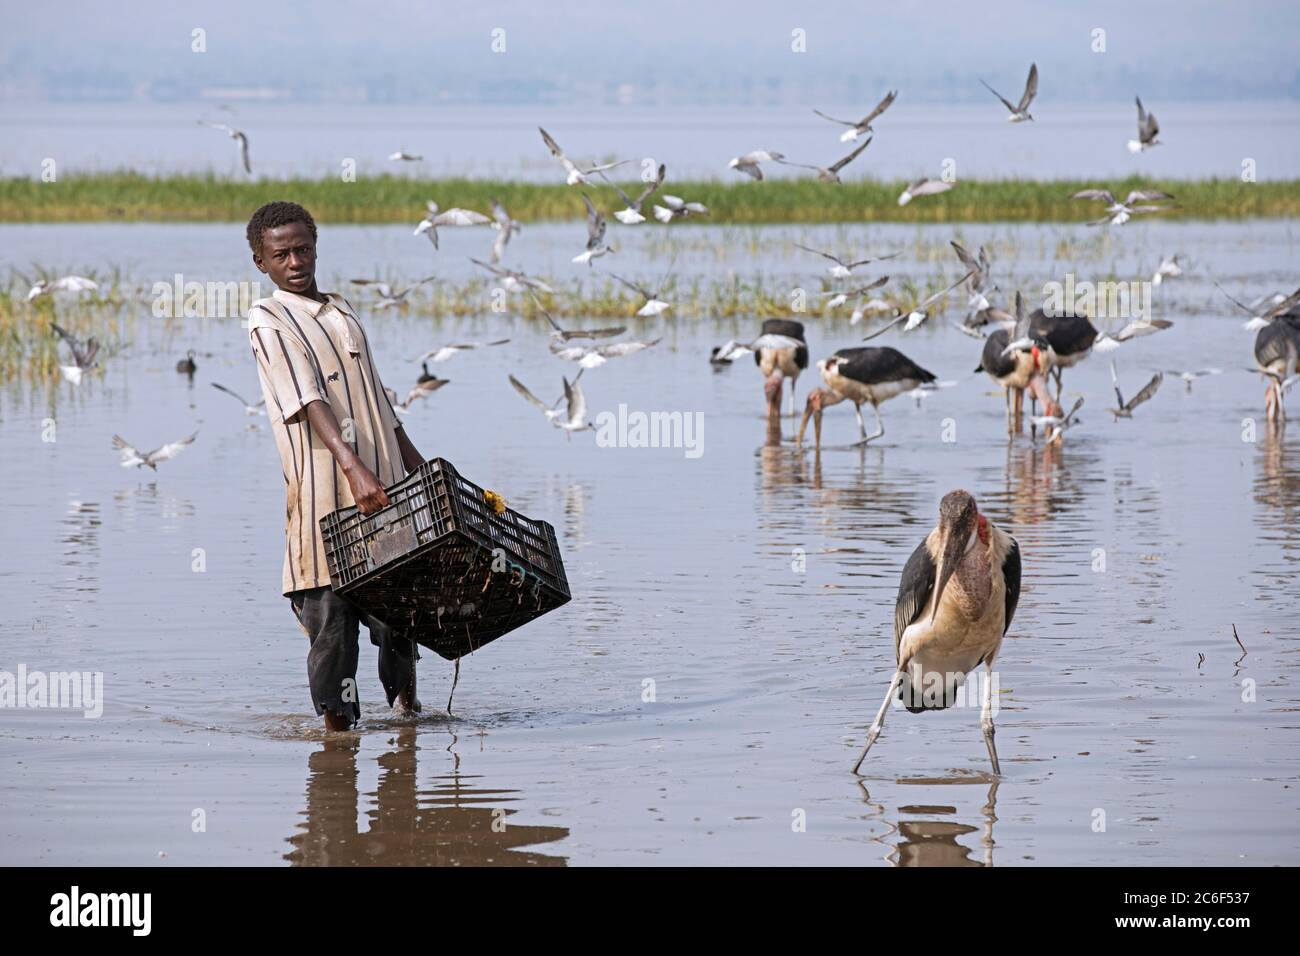 Boy washing caught fishes among marabou storks in Lake Hawassa for local fish market in the city Awasa, Great Rift Valley, Southern Ethiopia, Africa Stock Photo